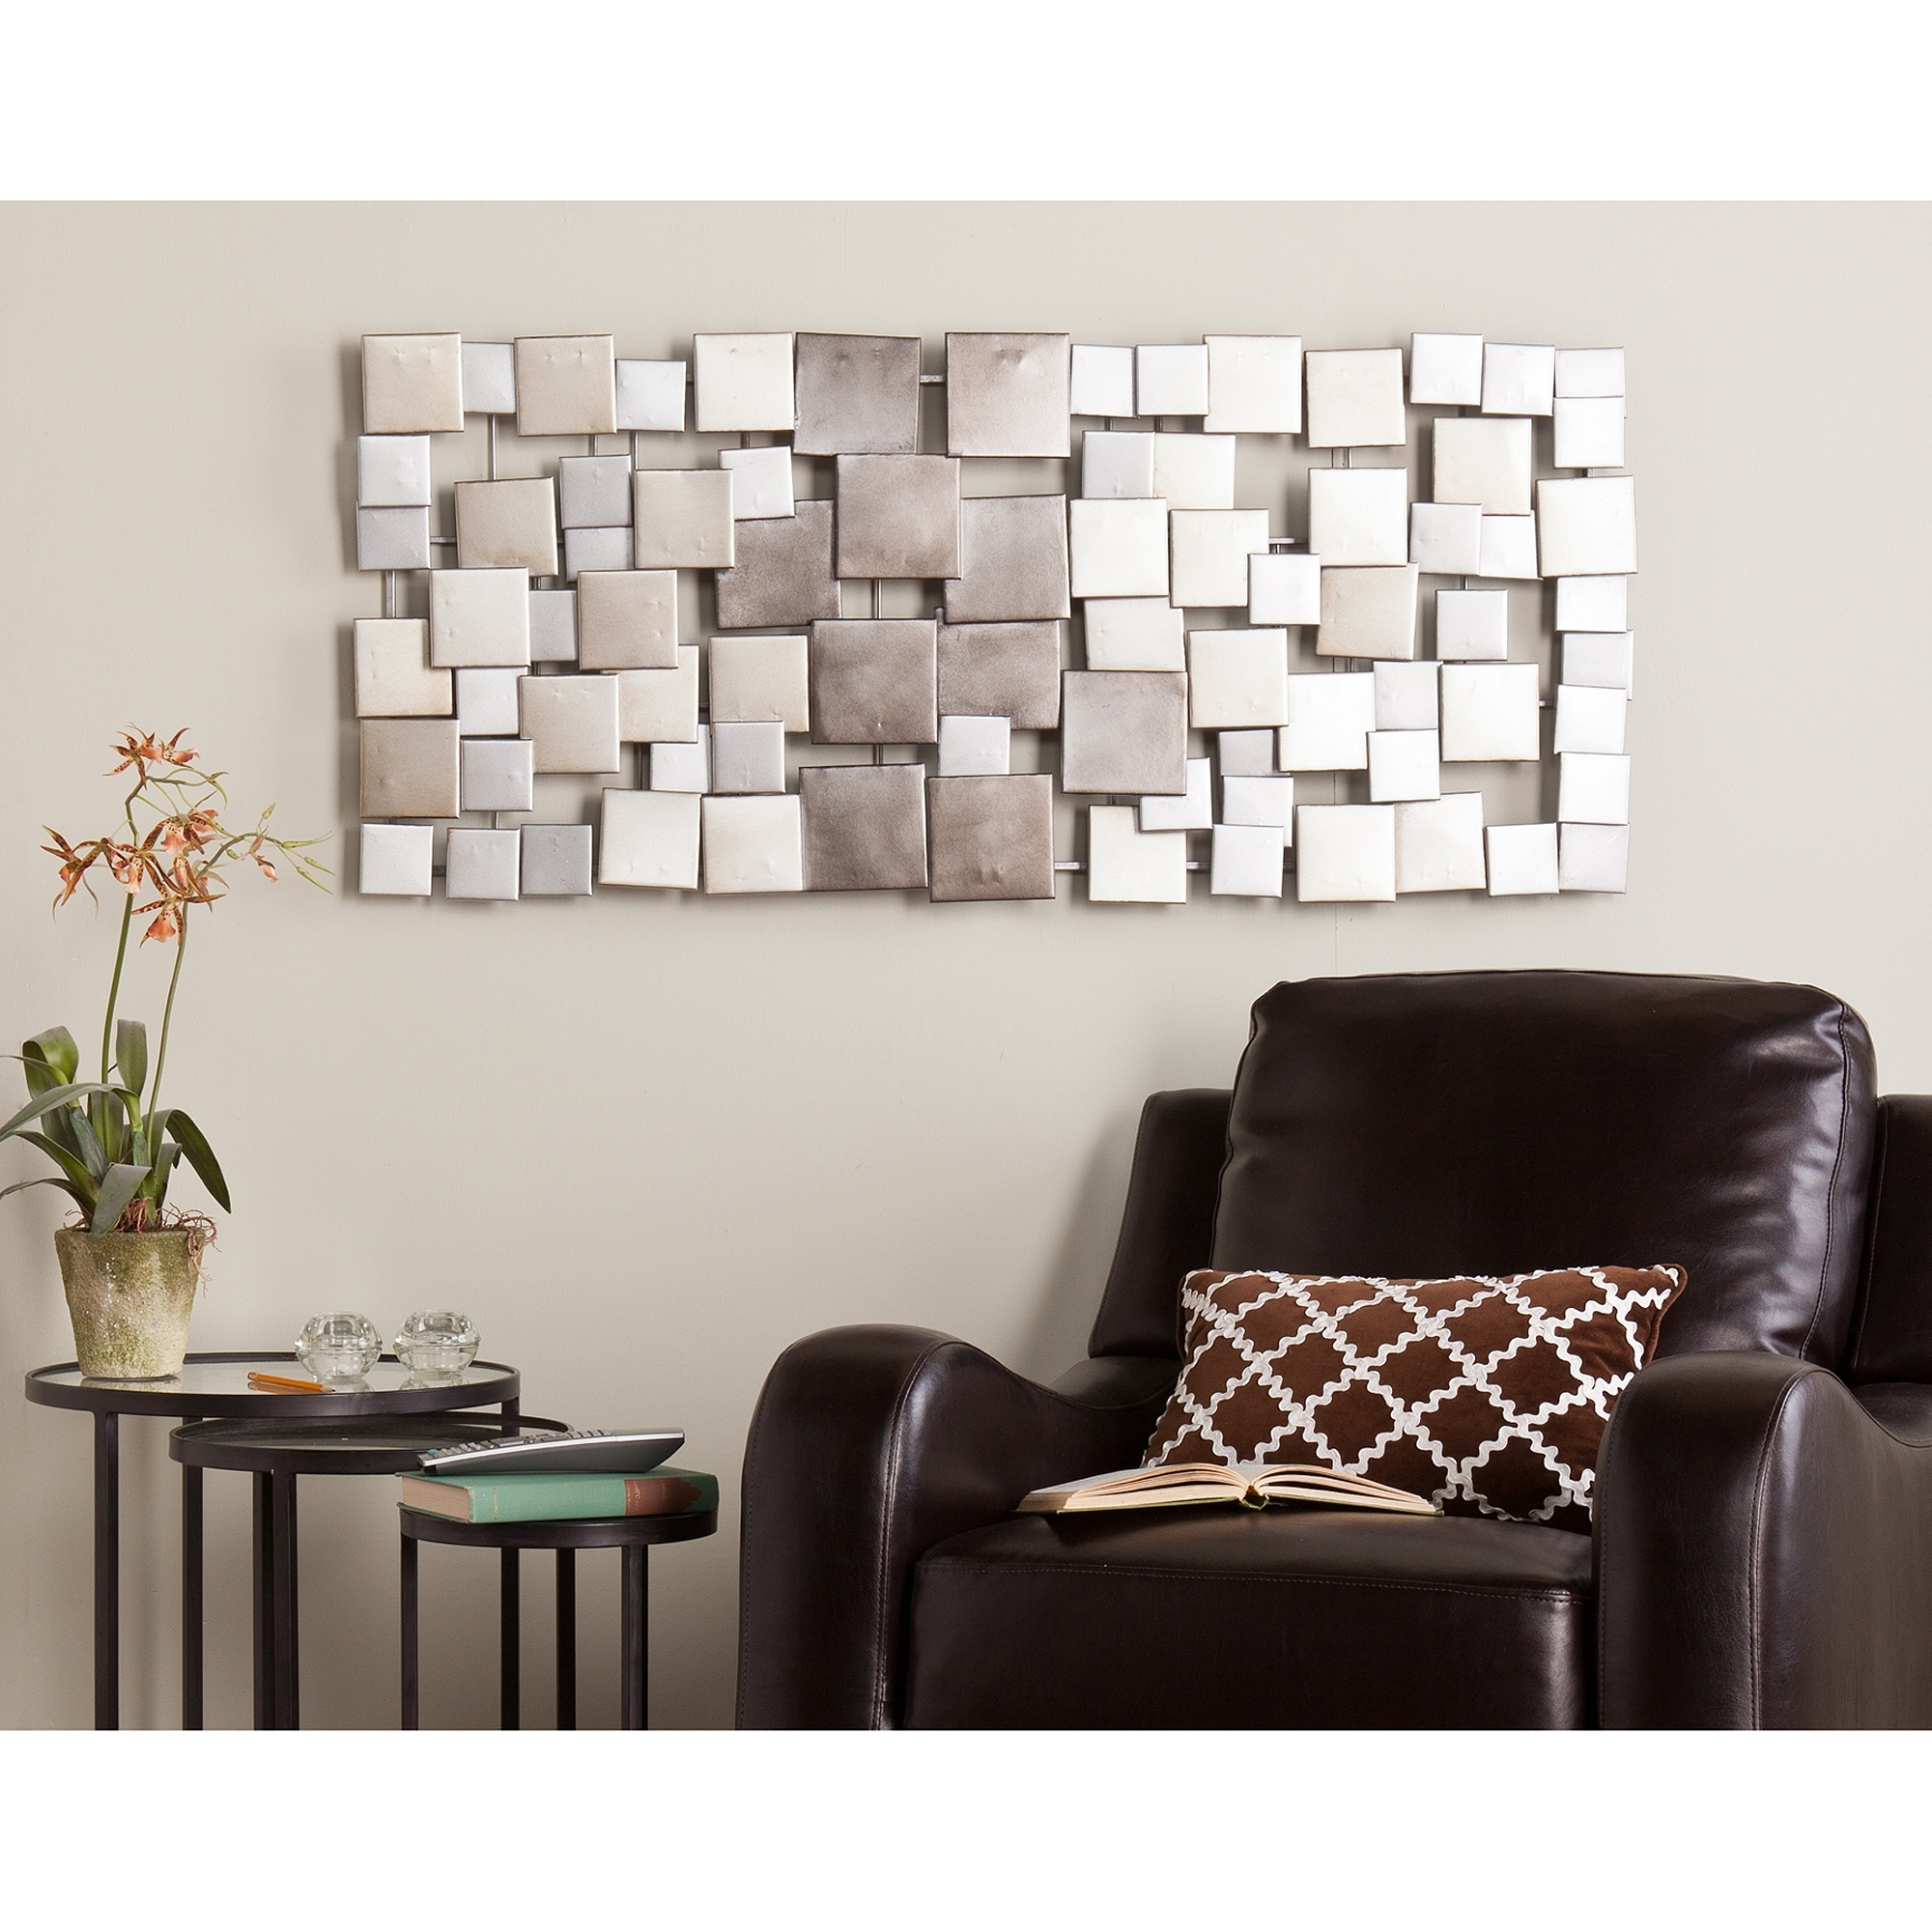 2017 Metallic Wall Art With Regard To Metal Wall Art – Walmart (View 2 of 15)